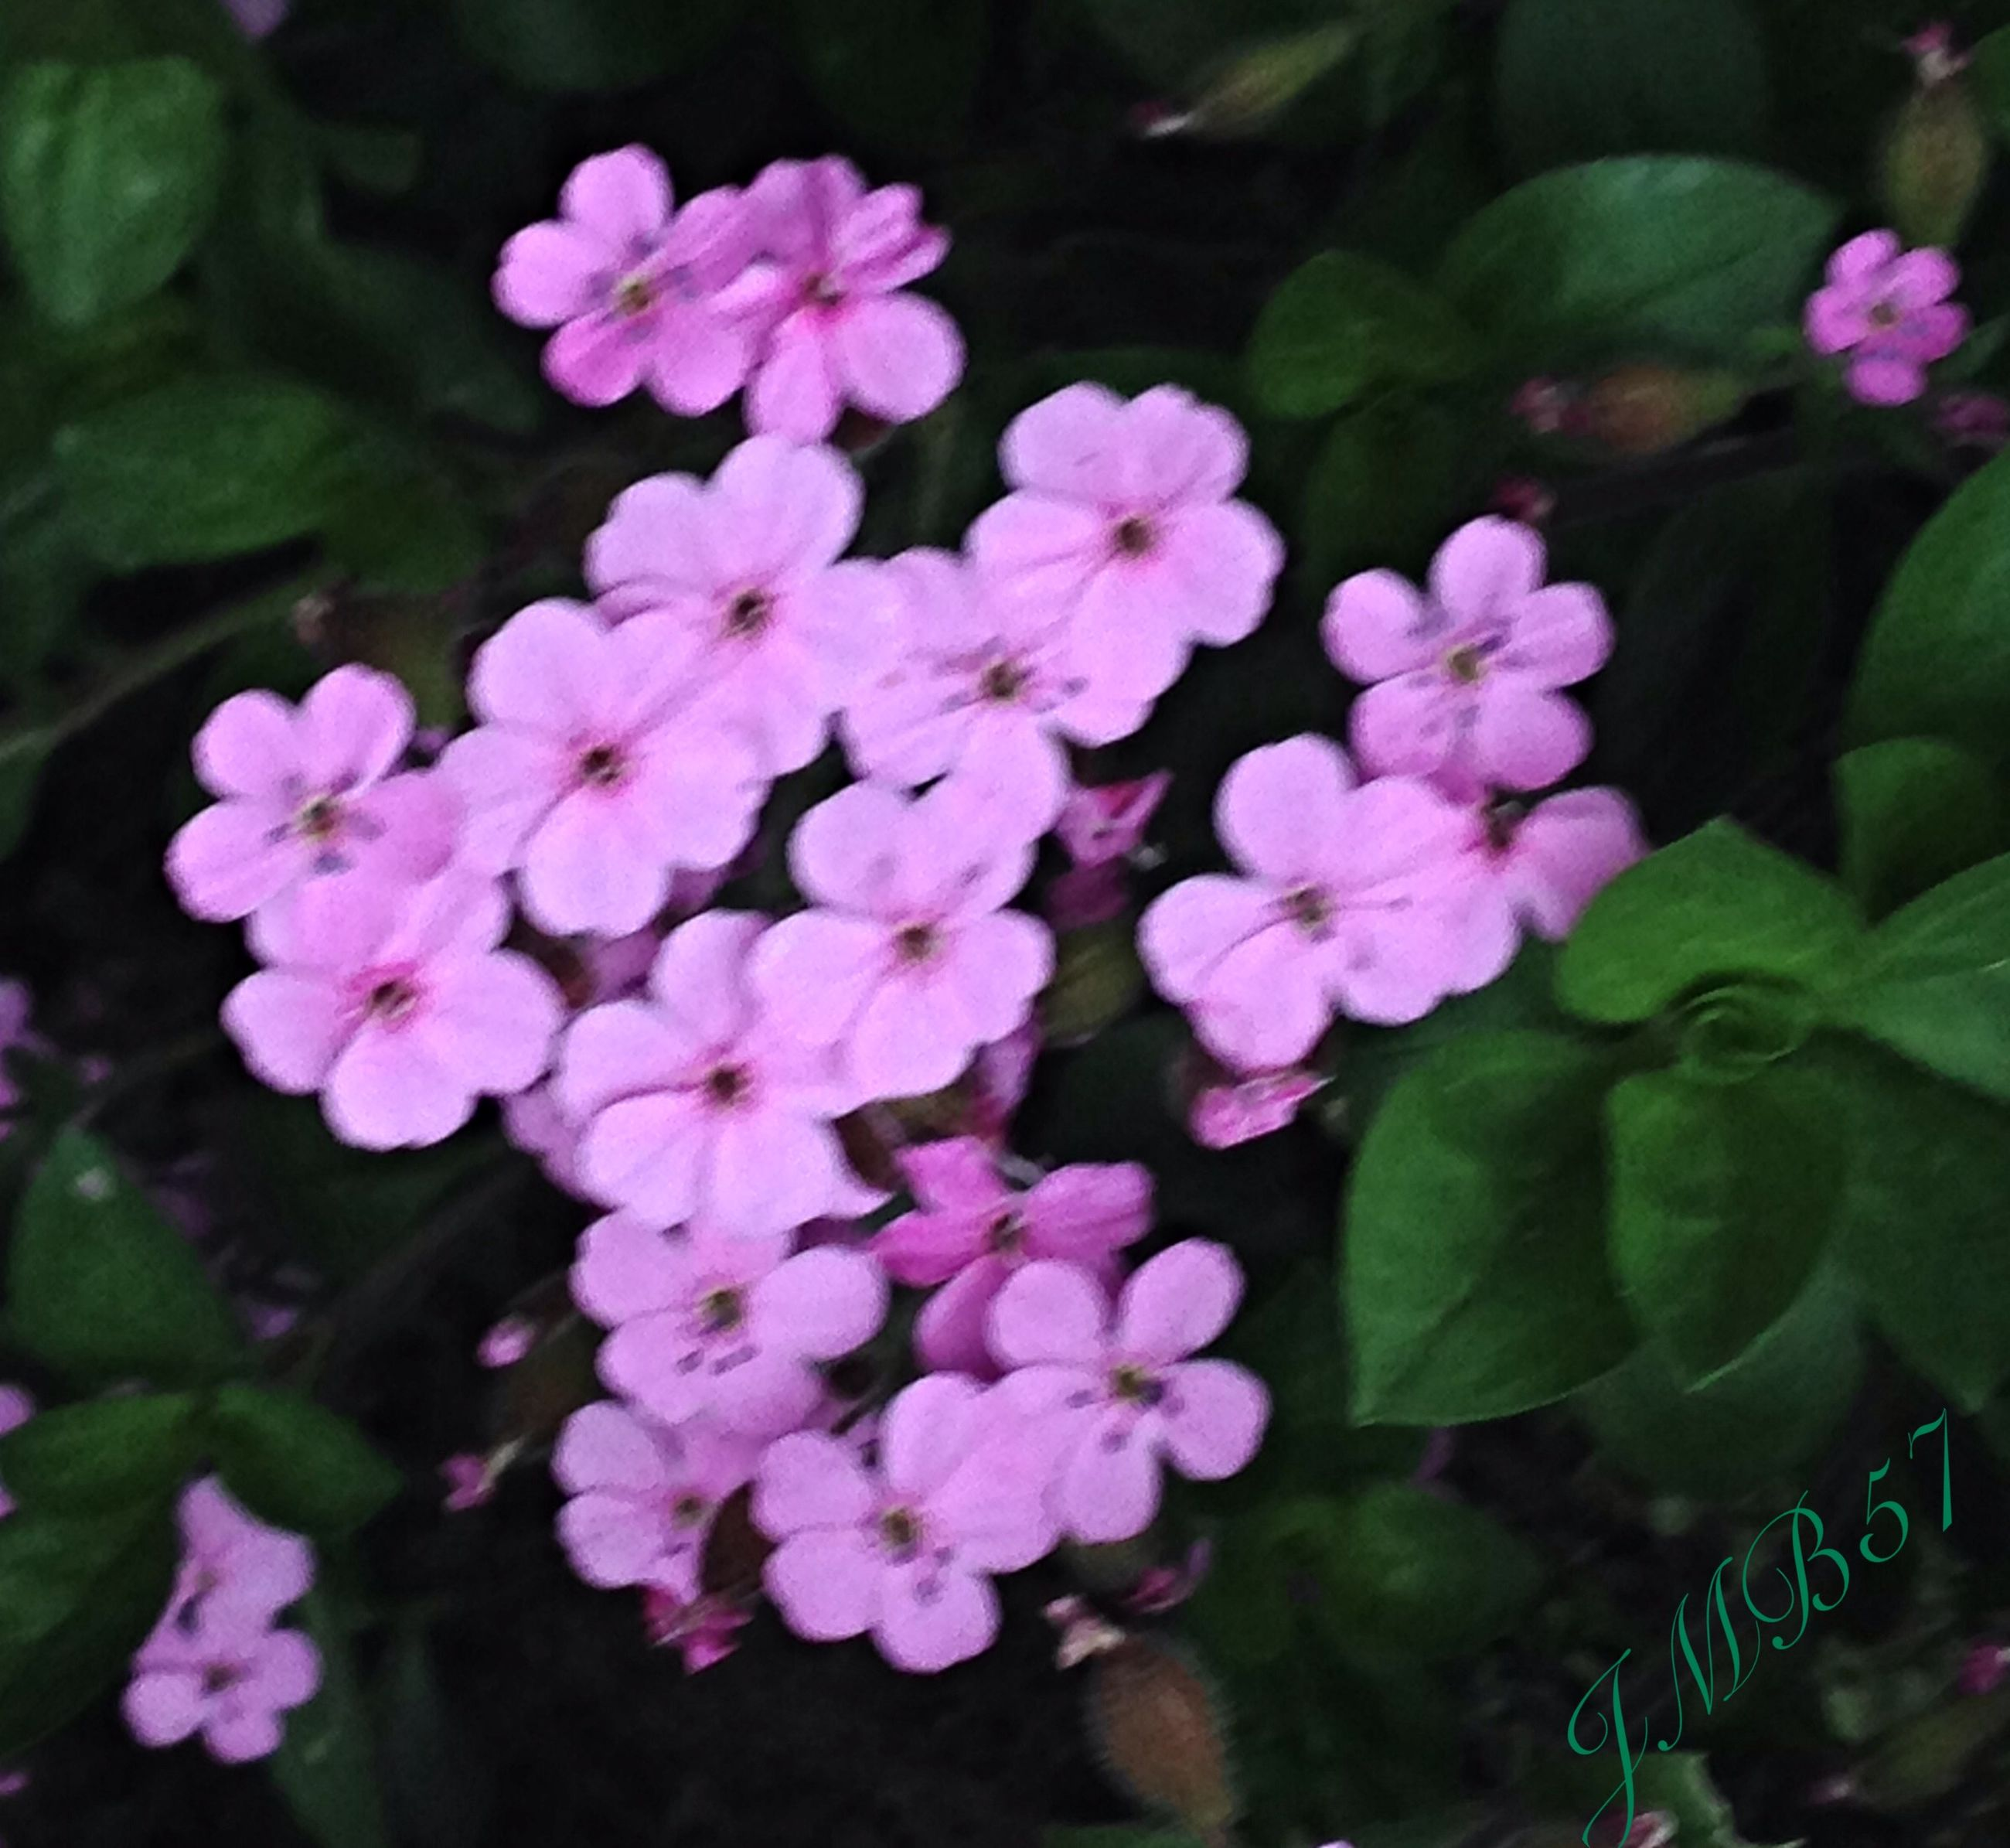 flower, freshness, petal, growth, fragility, beauty in nature, pink color, leaf, plant, flower head, nature, blooming, close-up, focus on foreground, in bloom, high angle view, purple, park - man made space, outdoors, day